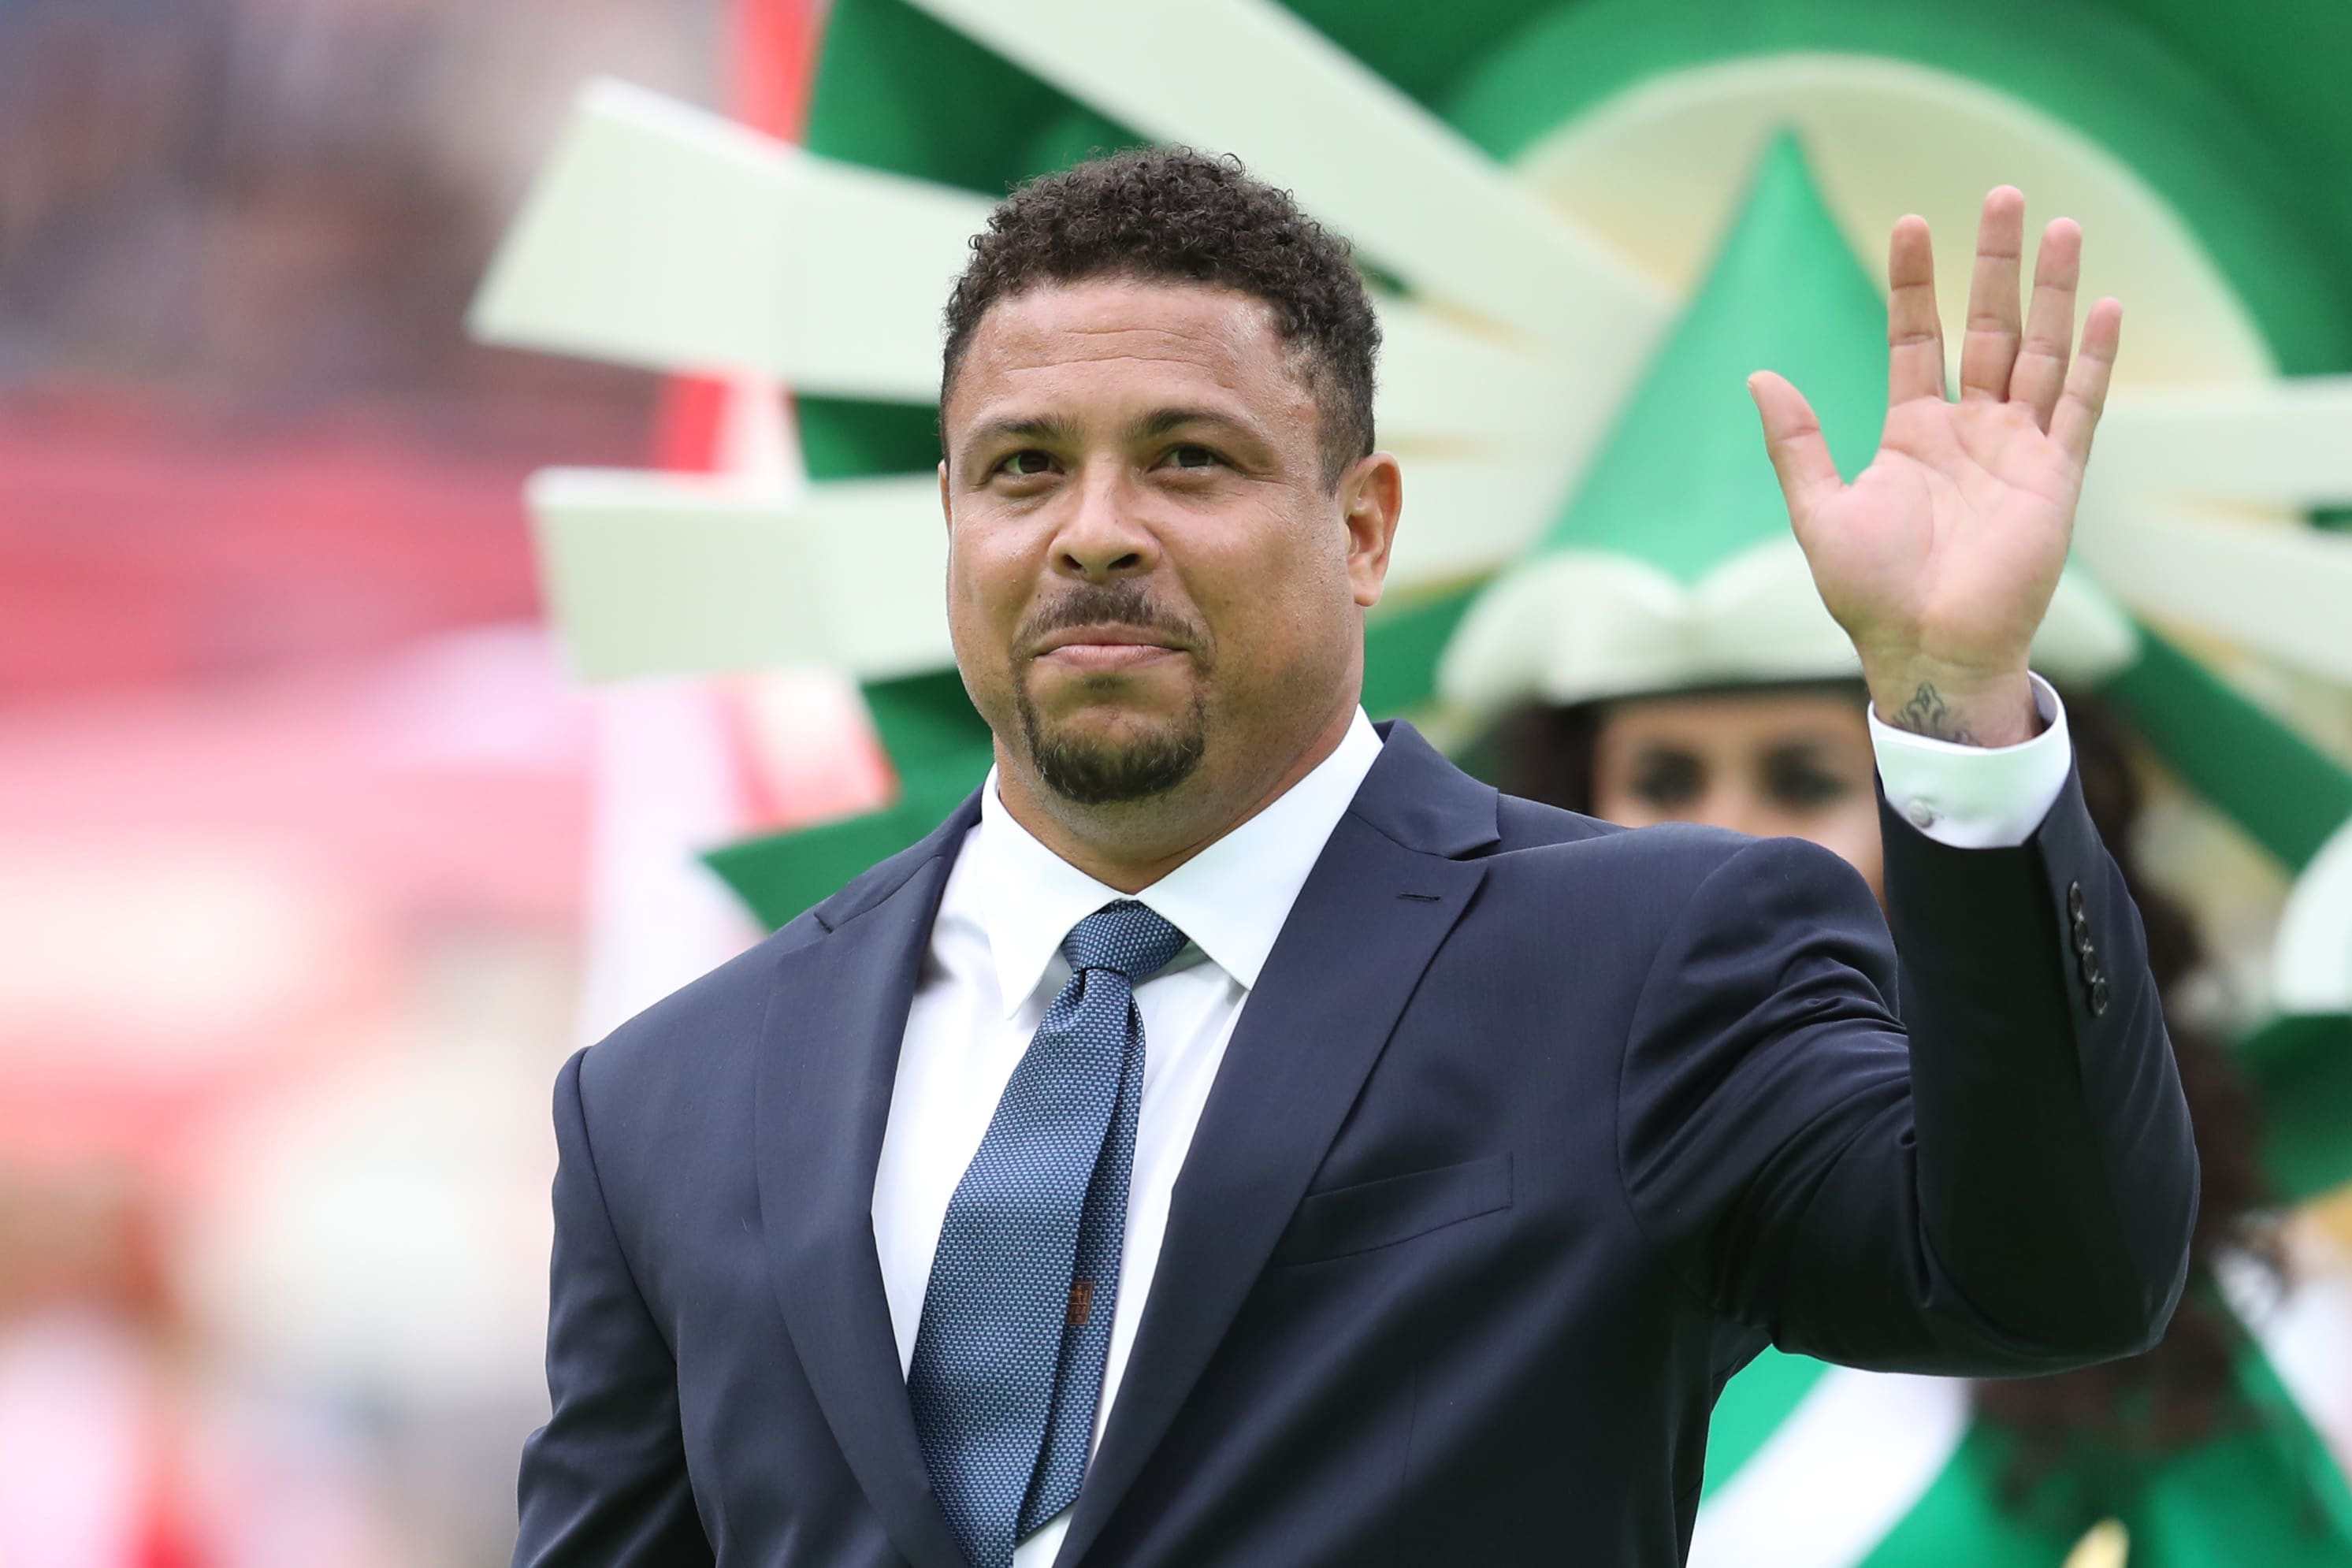 Brazil Soccer Star Ronaldo Becomes The Majority Owner Of A Top Spanish Club